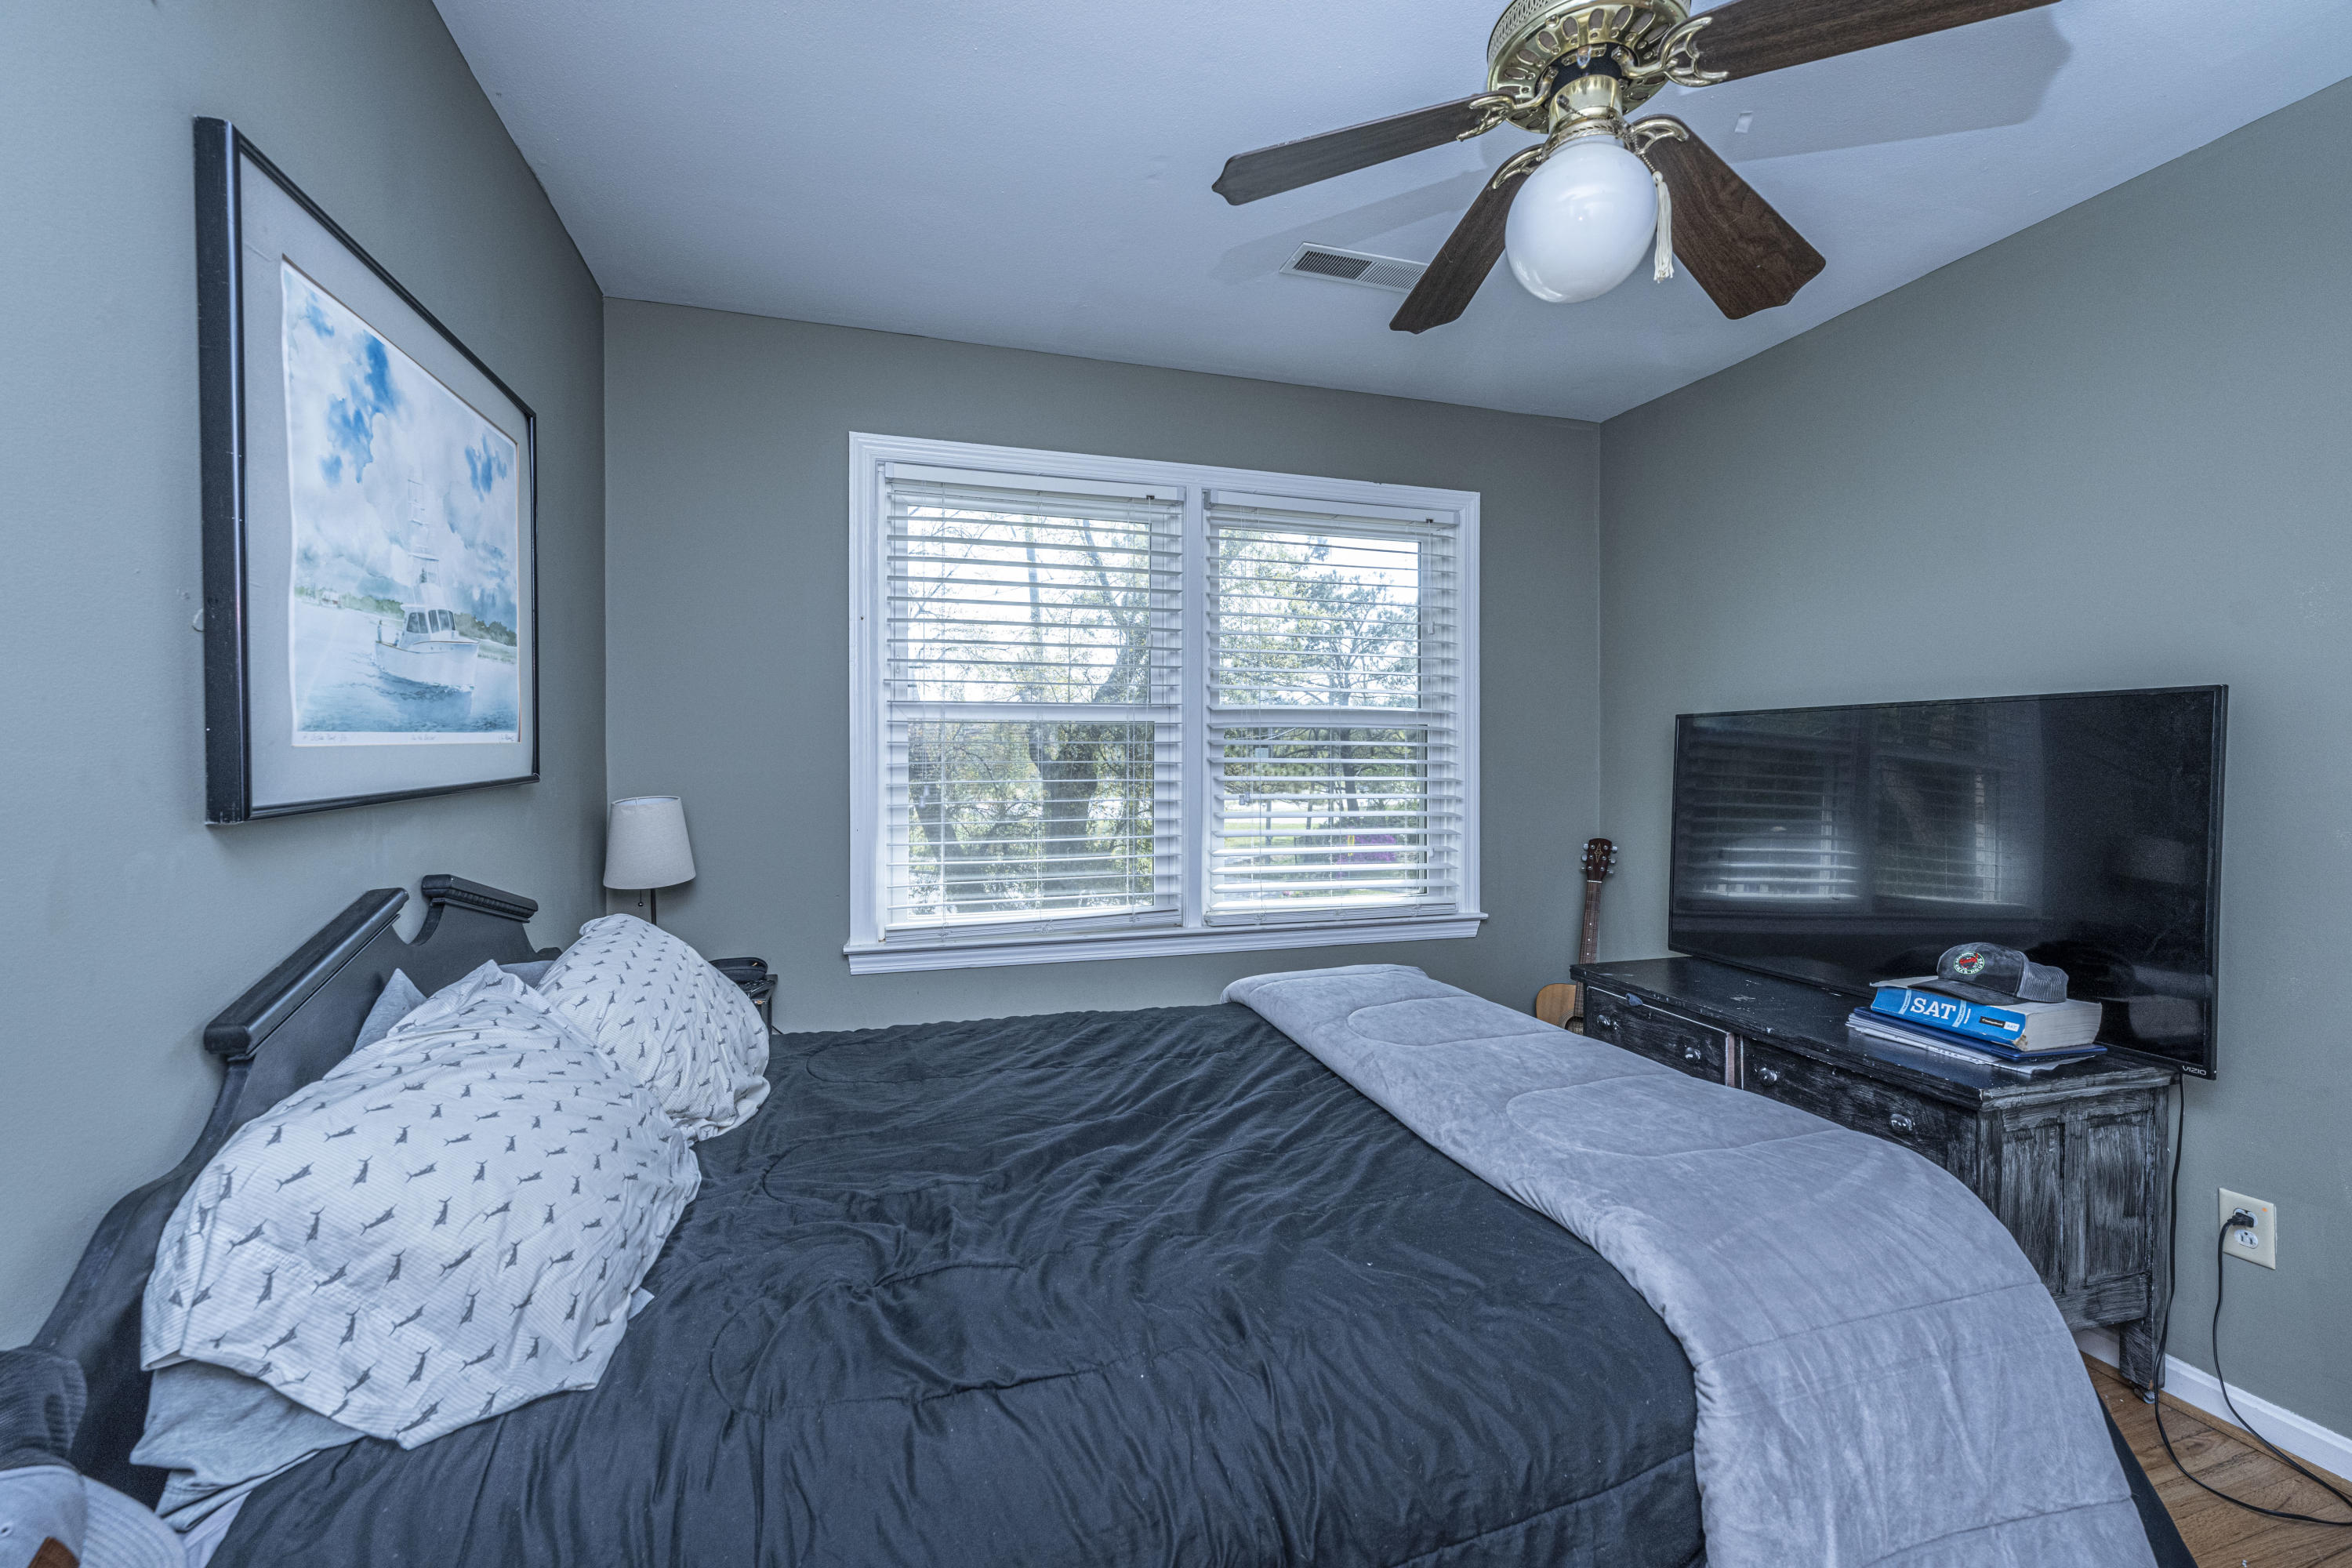 Stiles Point Homes For Sale - 775 Sparrow, Charleston, SC - 8